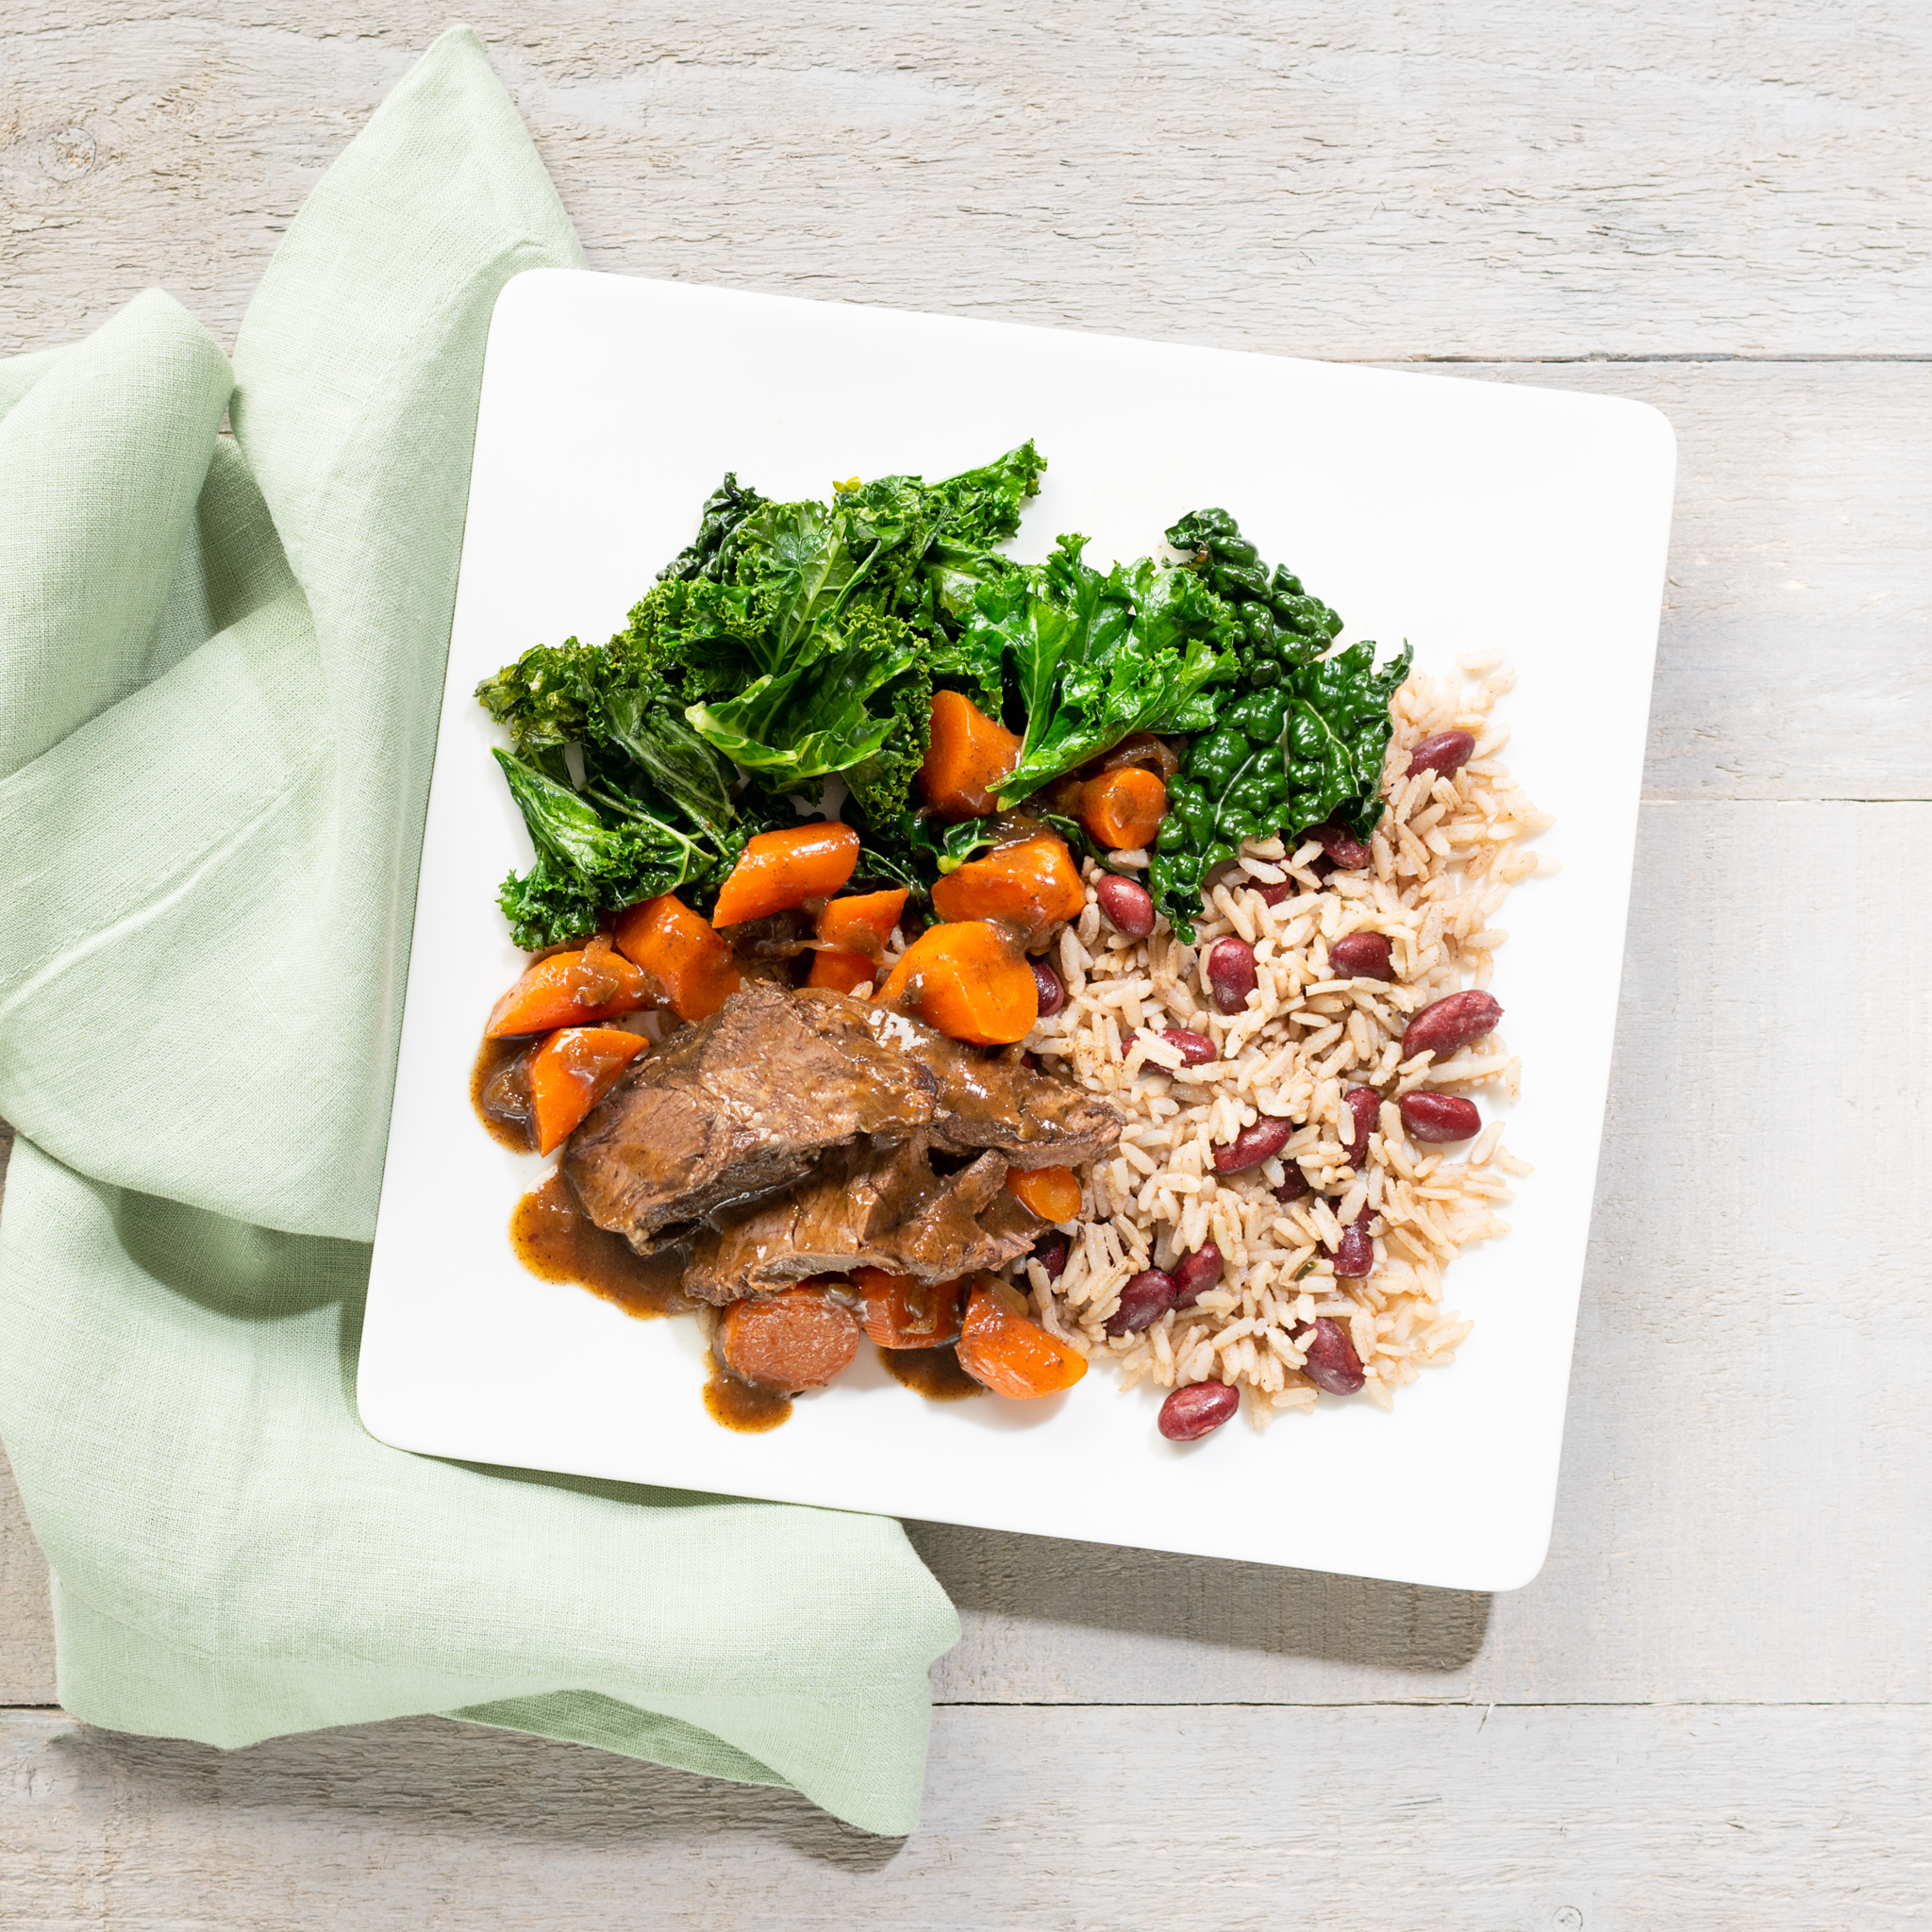 Slow cooker jerk beef pot roast with braised carrots, rice and peas & wilted greens